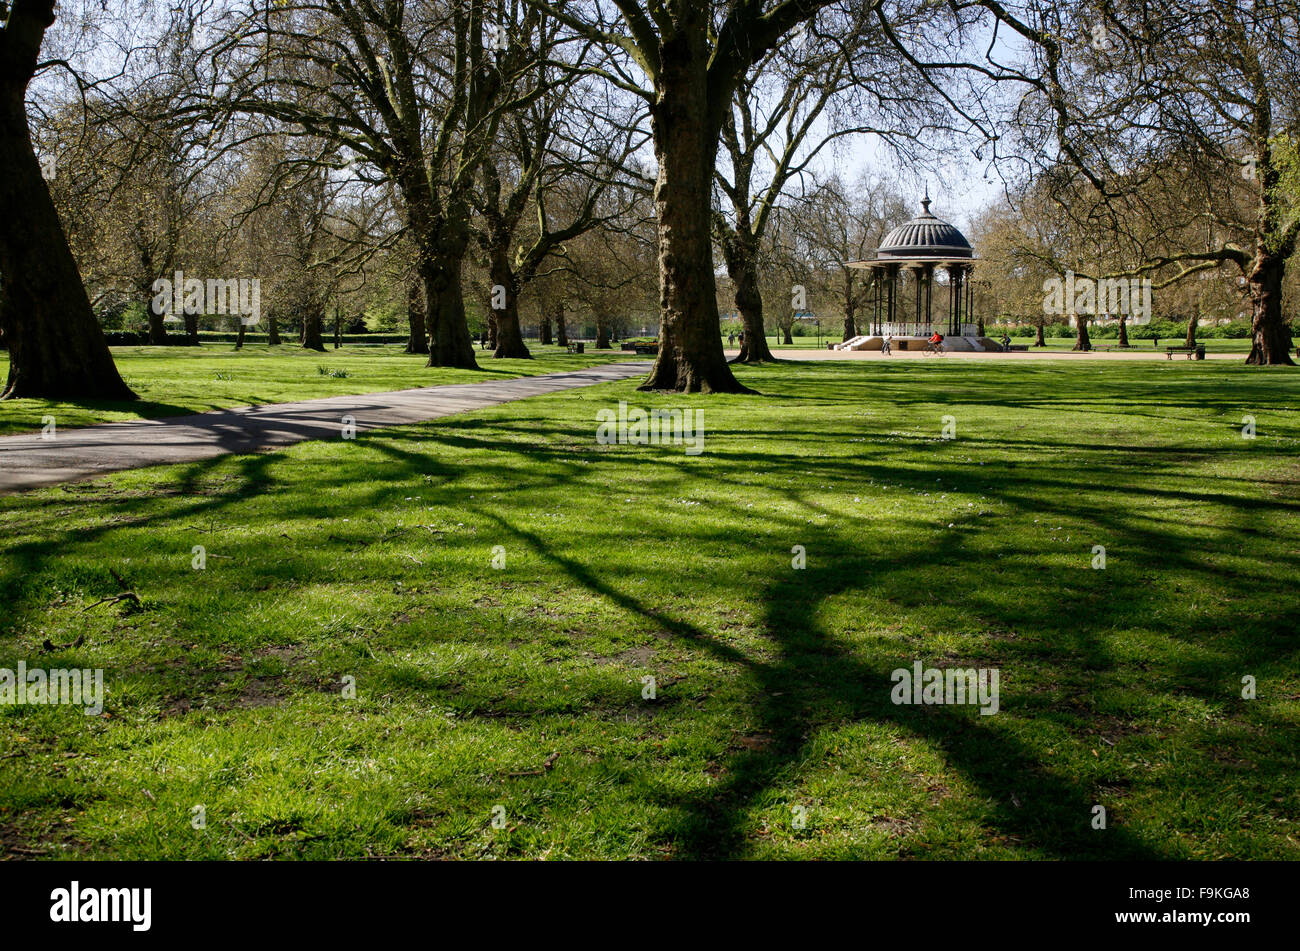 Bandstand in Southwark Park, Rotherhithe, London, UK - Stock Image